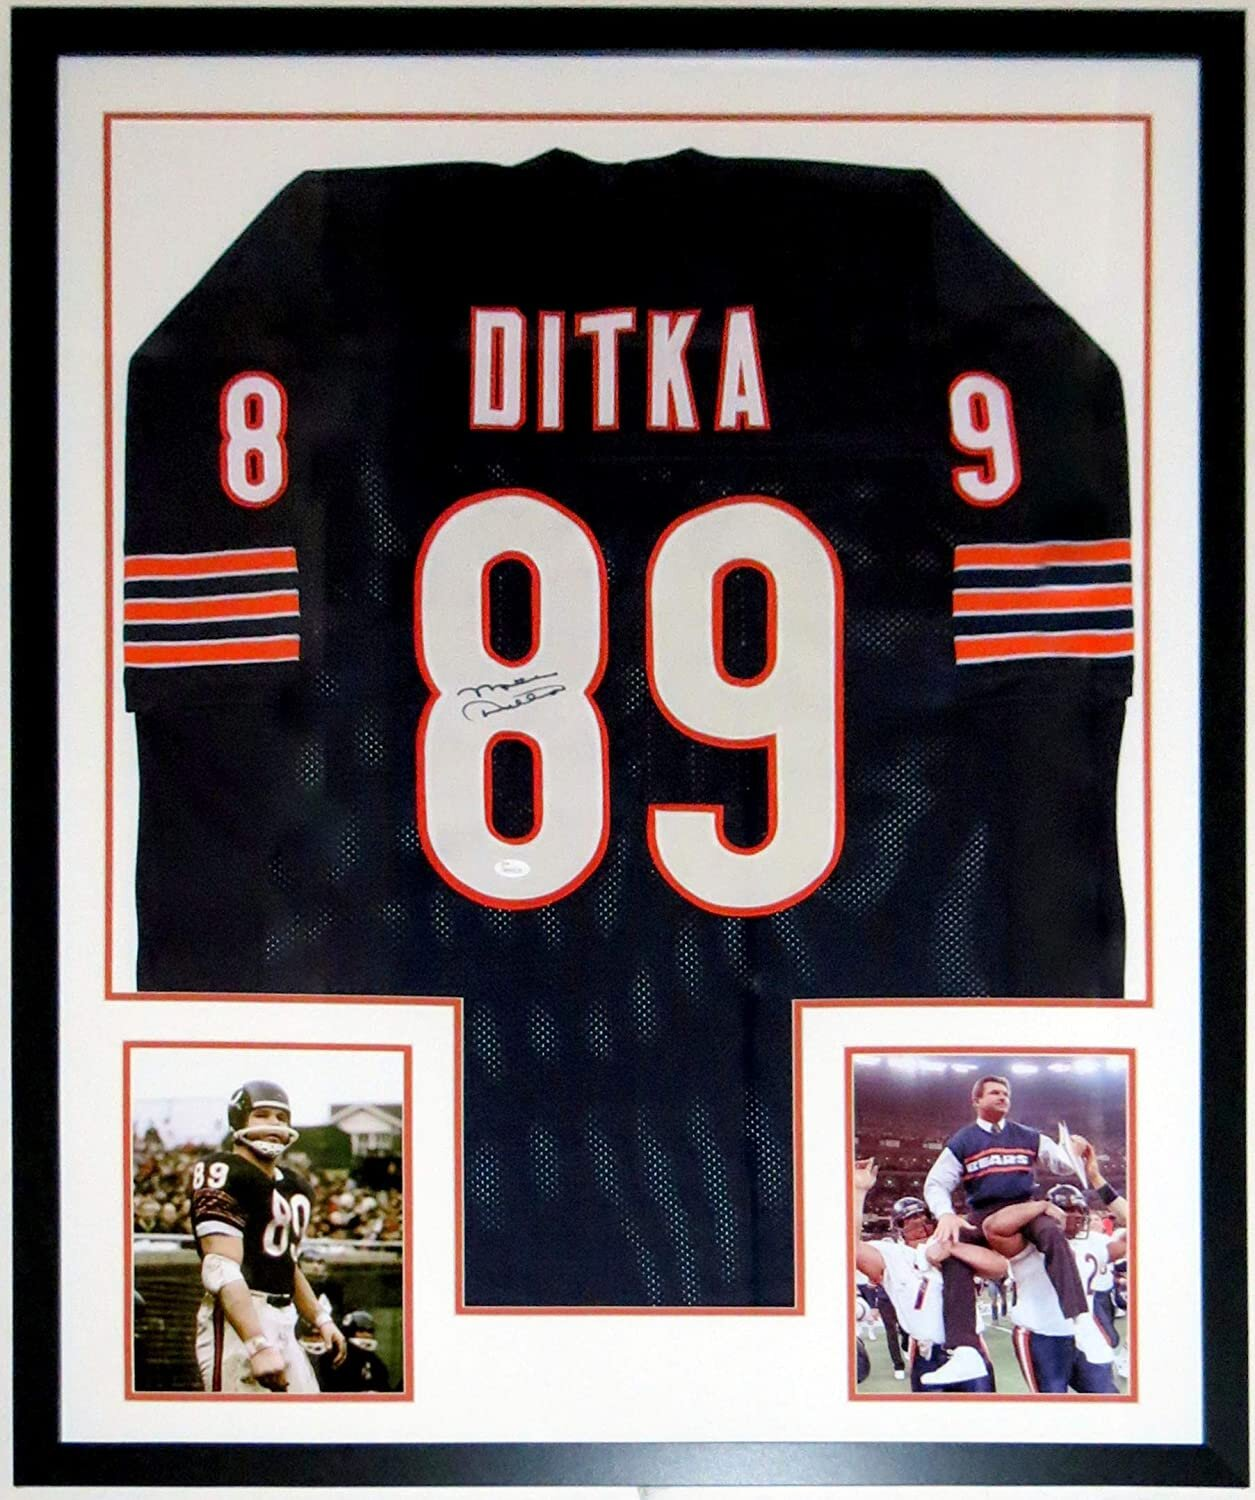 Bleachers Sports Music Framing Mike Ditka Signed Chicago Bears Jersey Jsa Authenticated Coa Professionally Framed 2 8x10